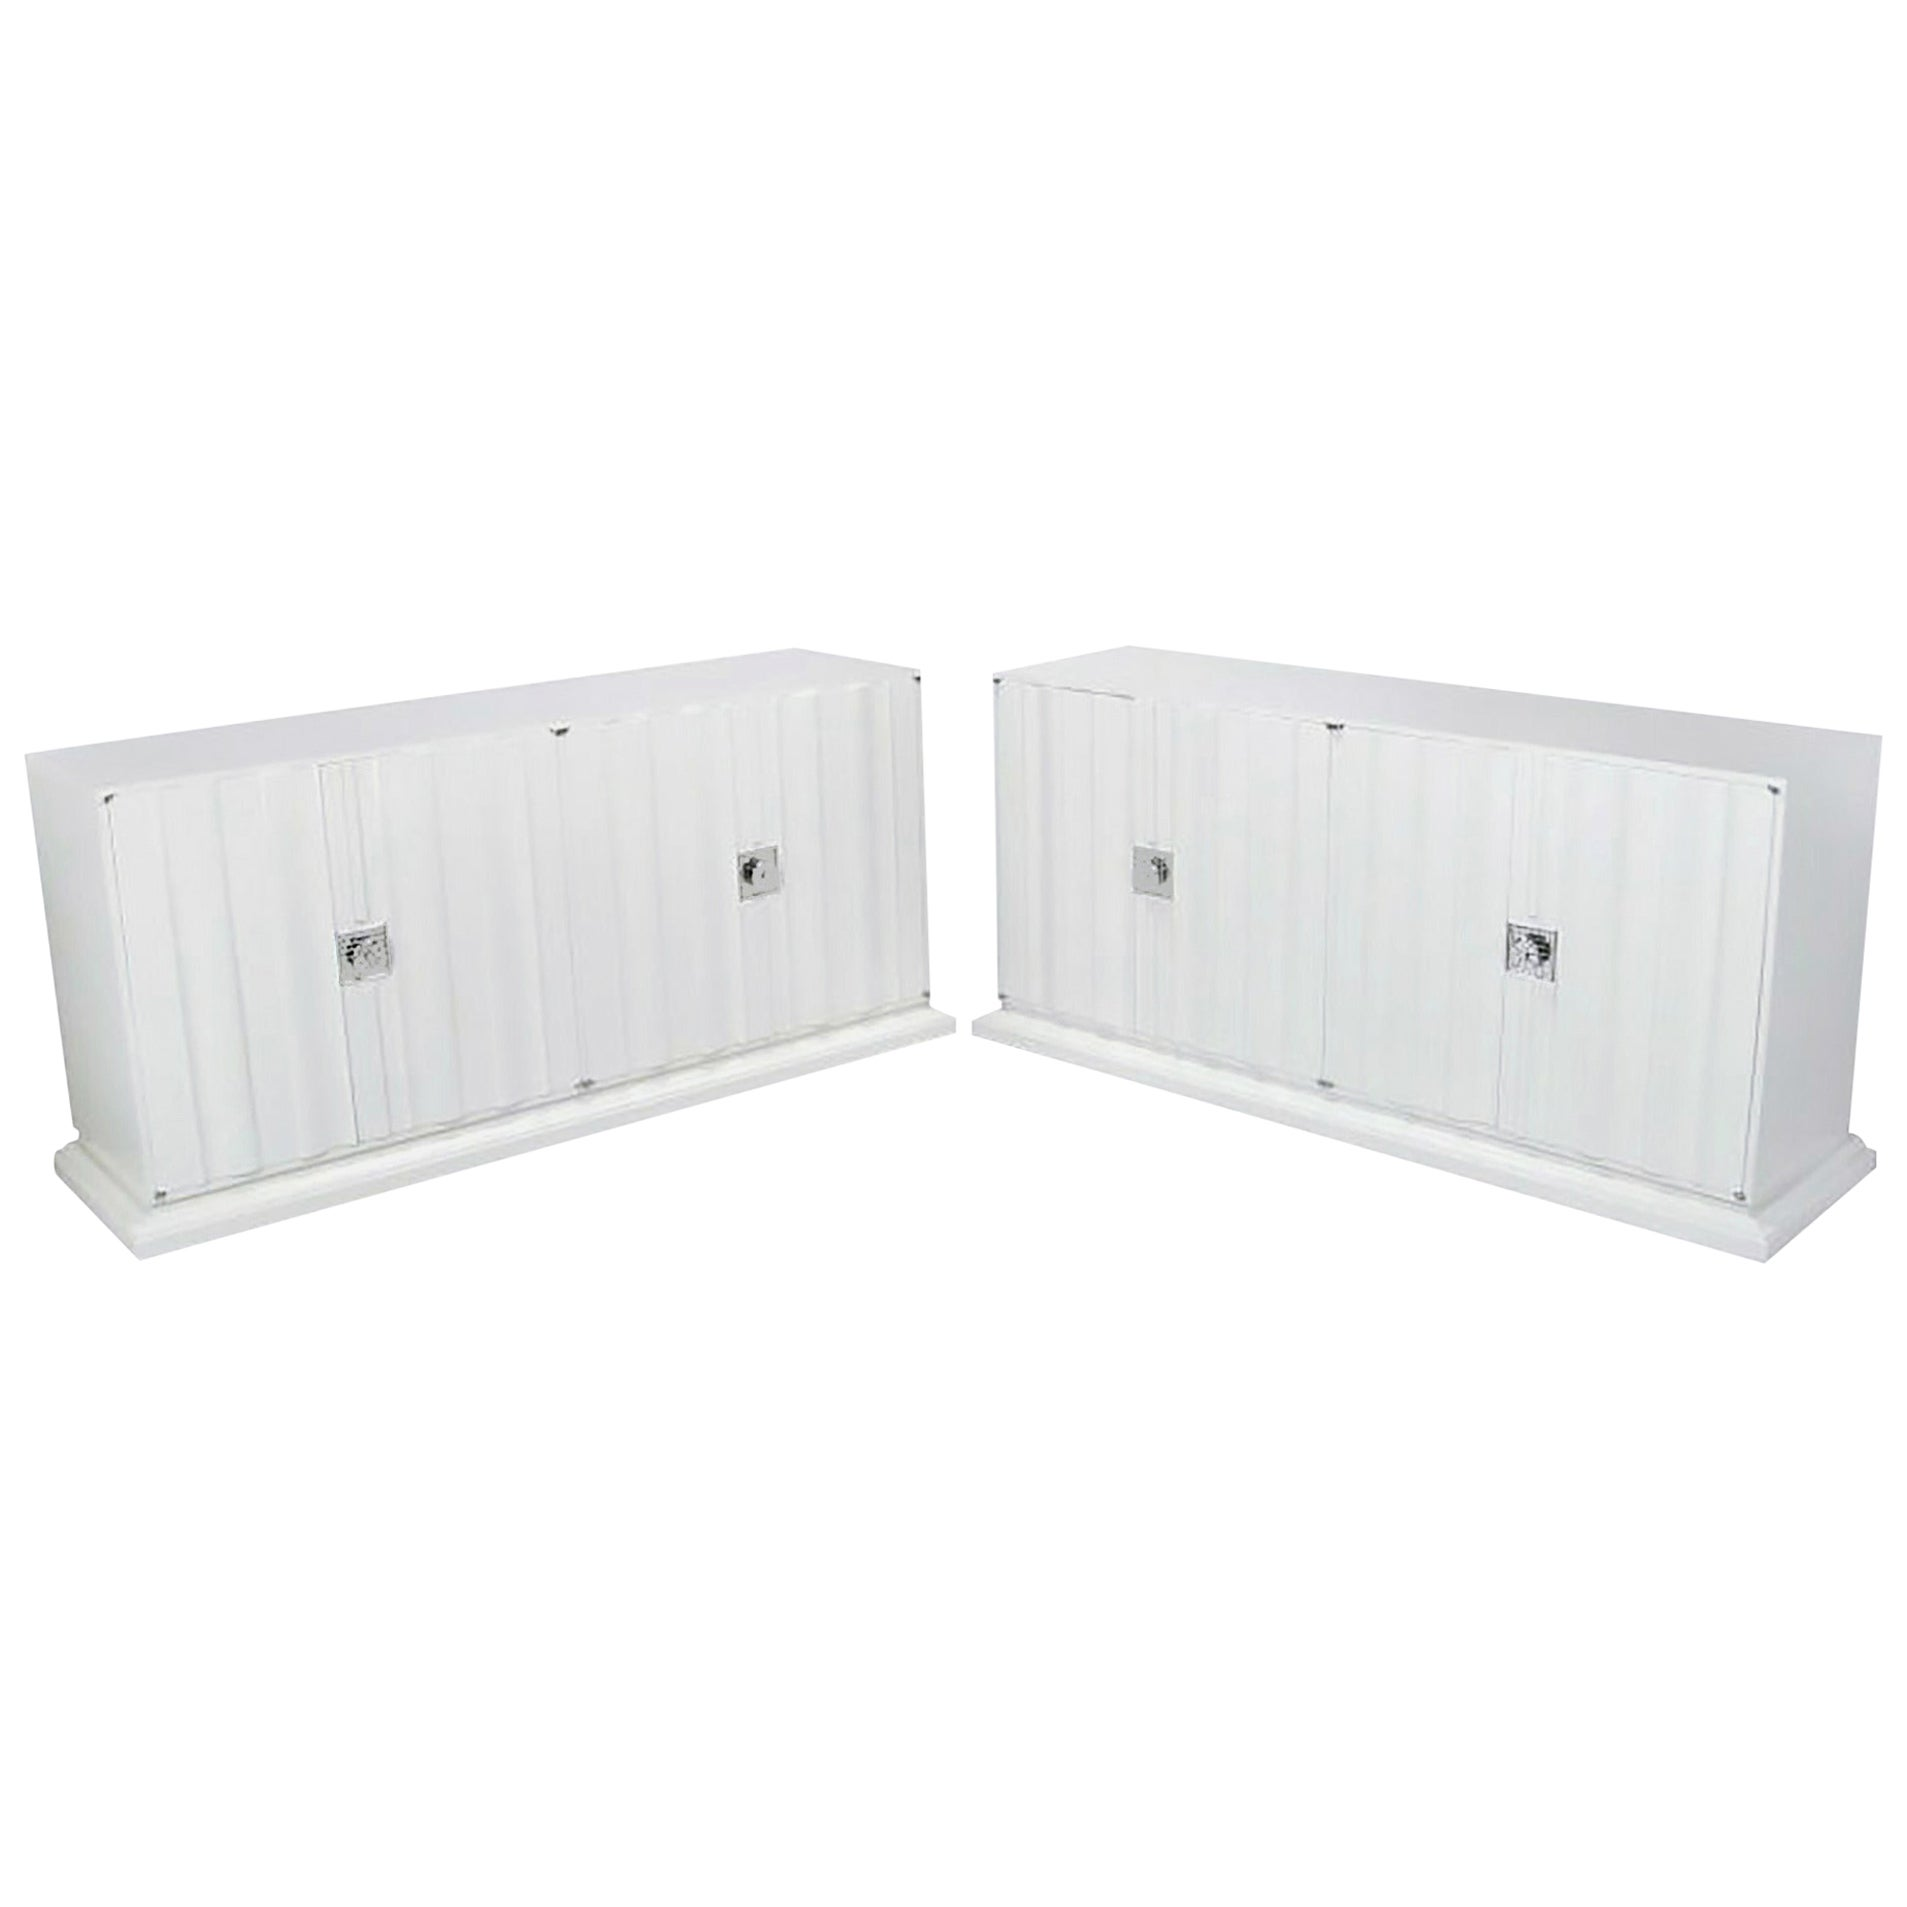 Pair of Custom White Lacquer Linen Fold Cabinets